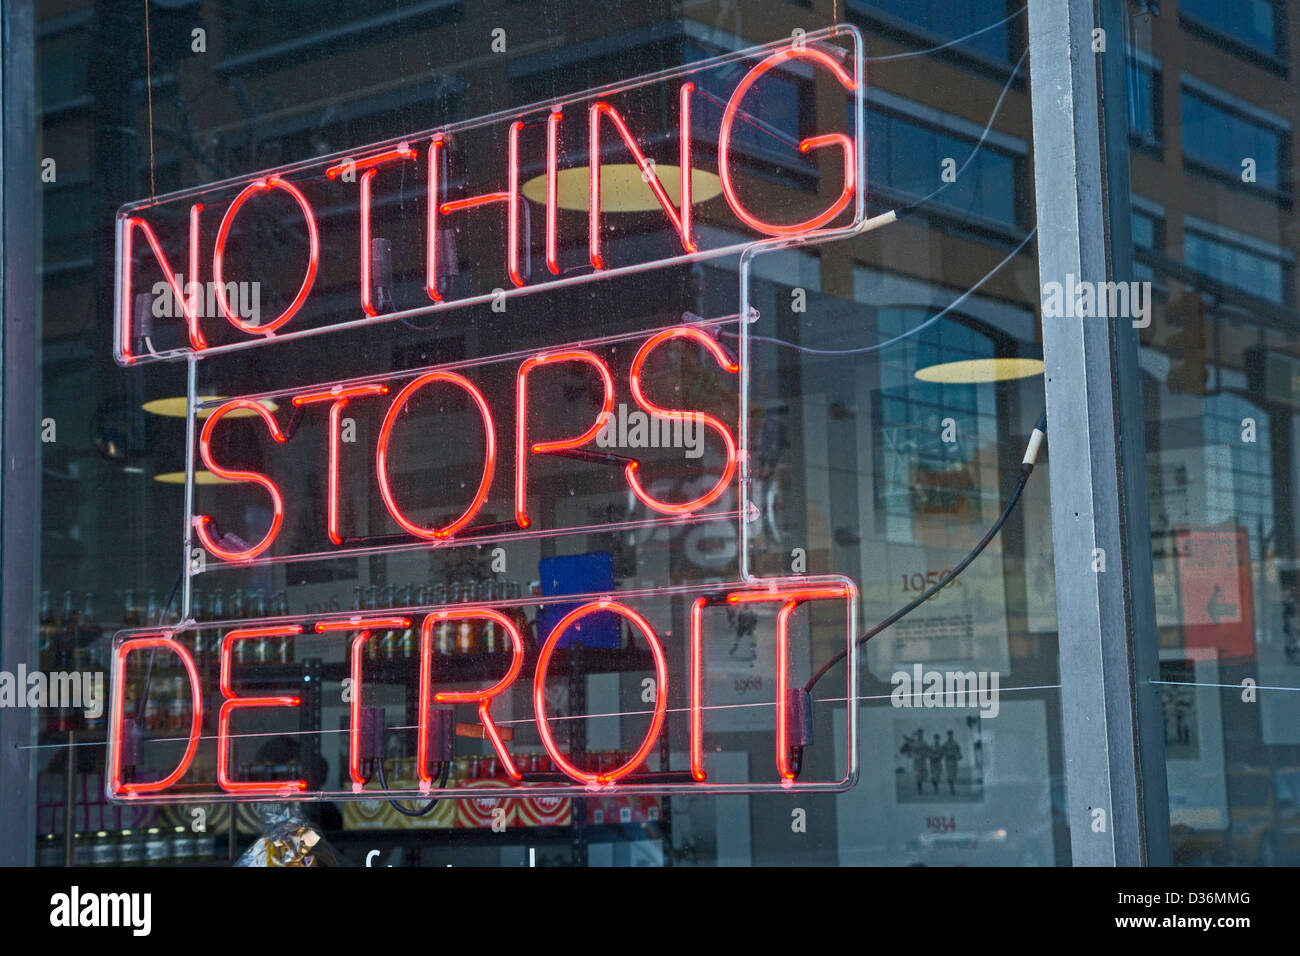 Detroit, Michigan - A neon sign on a shop selling locally-made products. - Stock Image